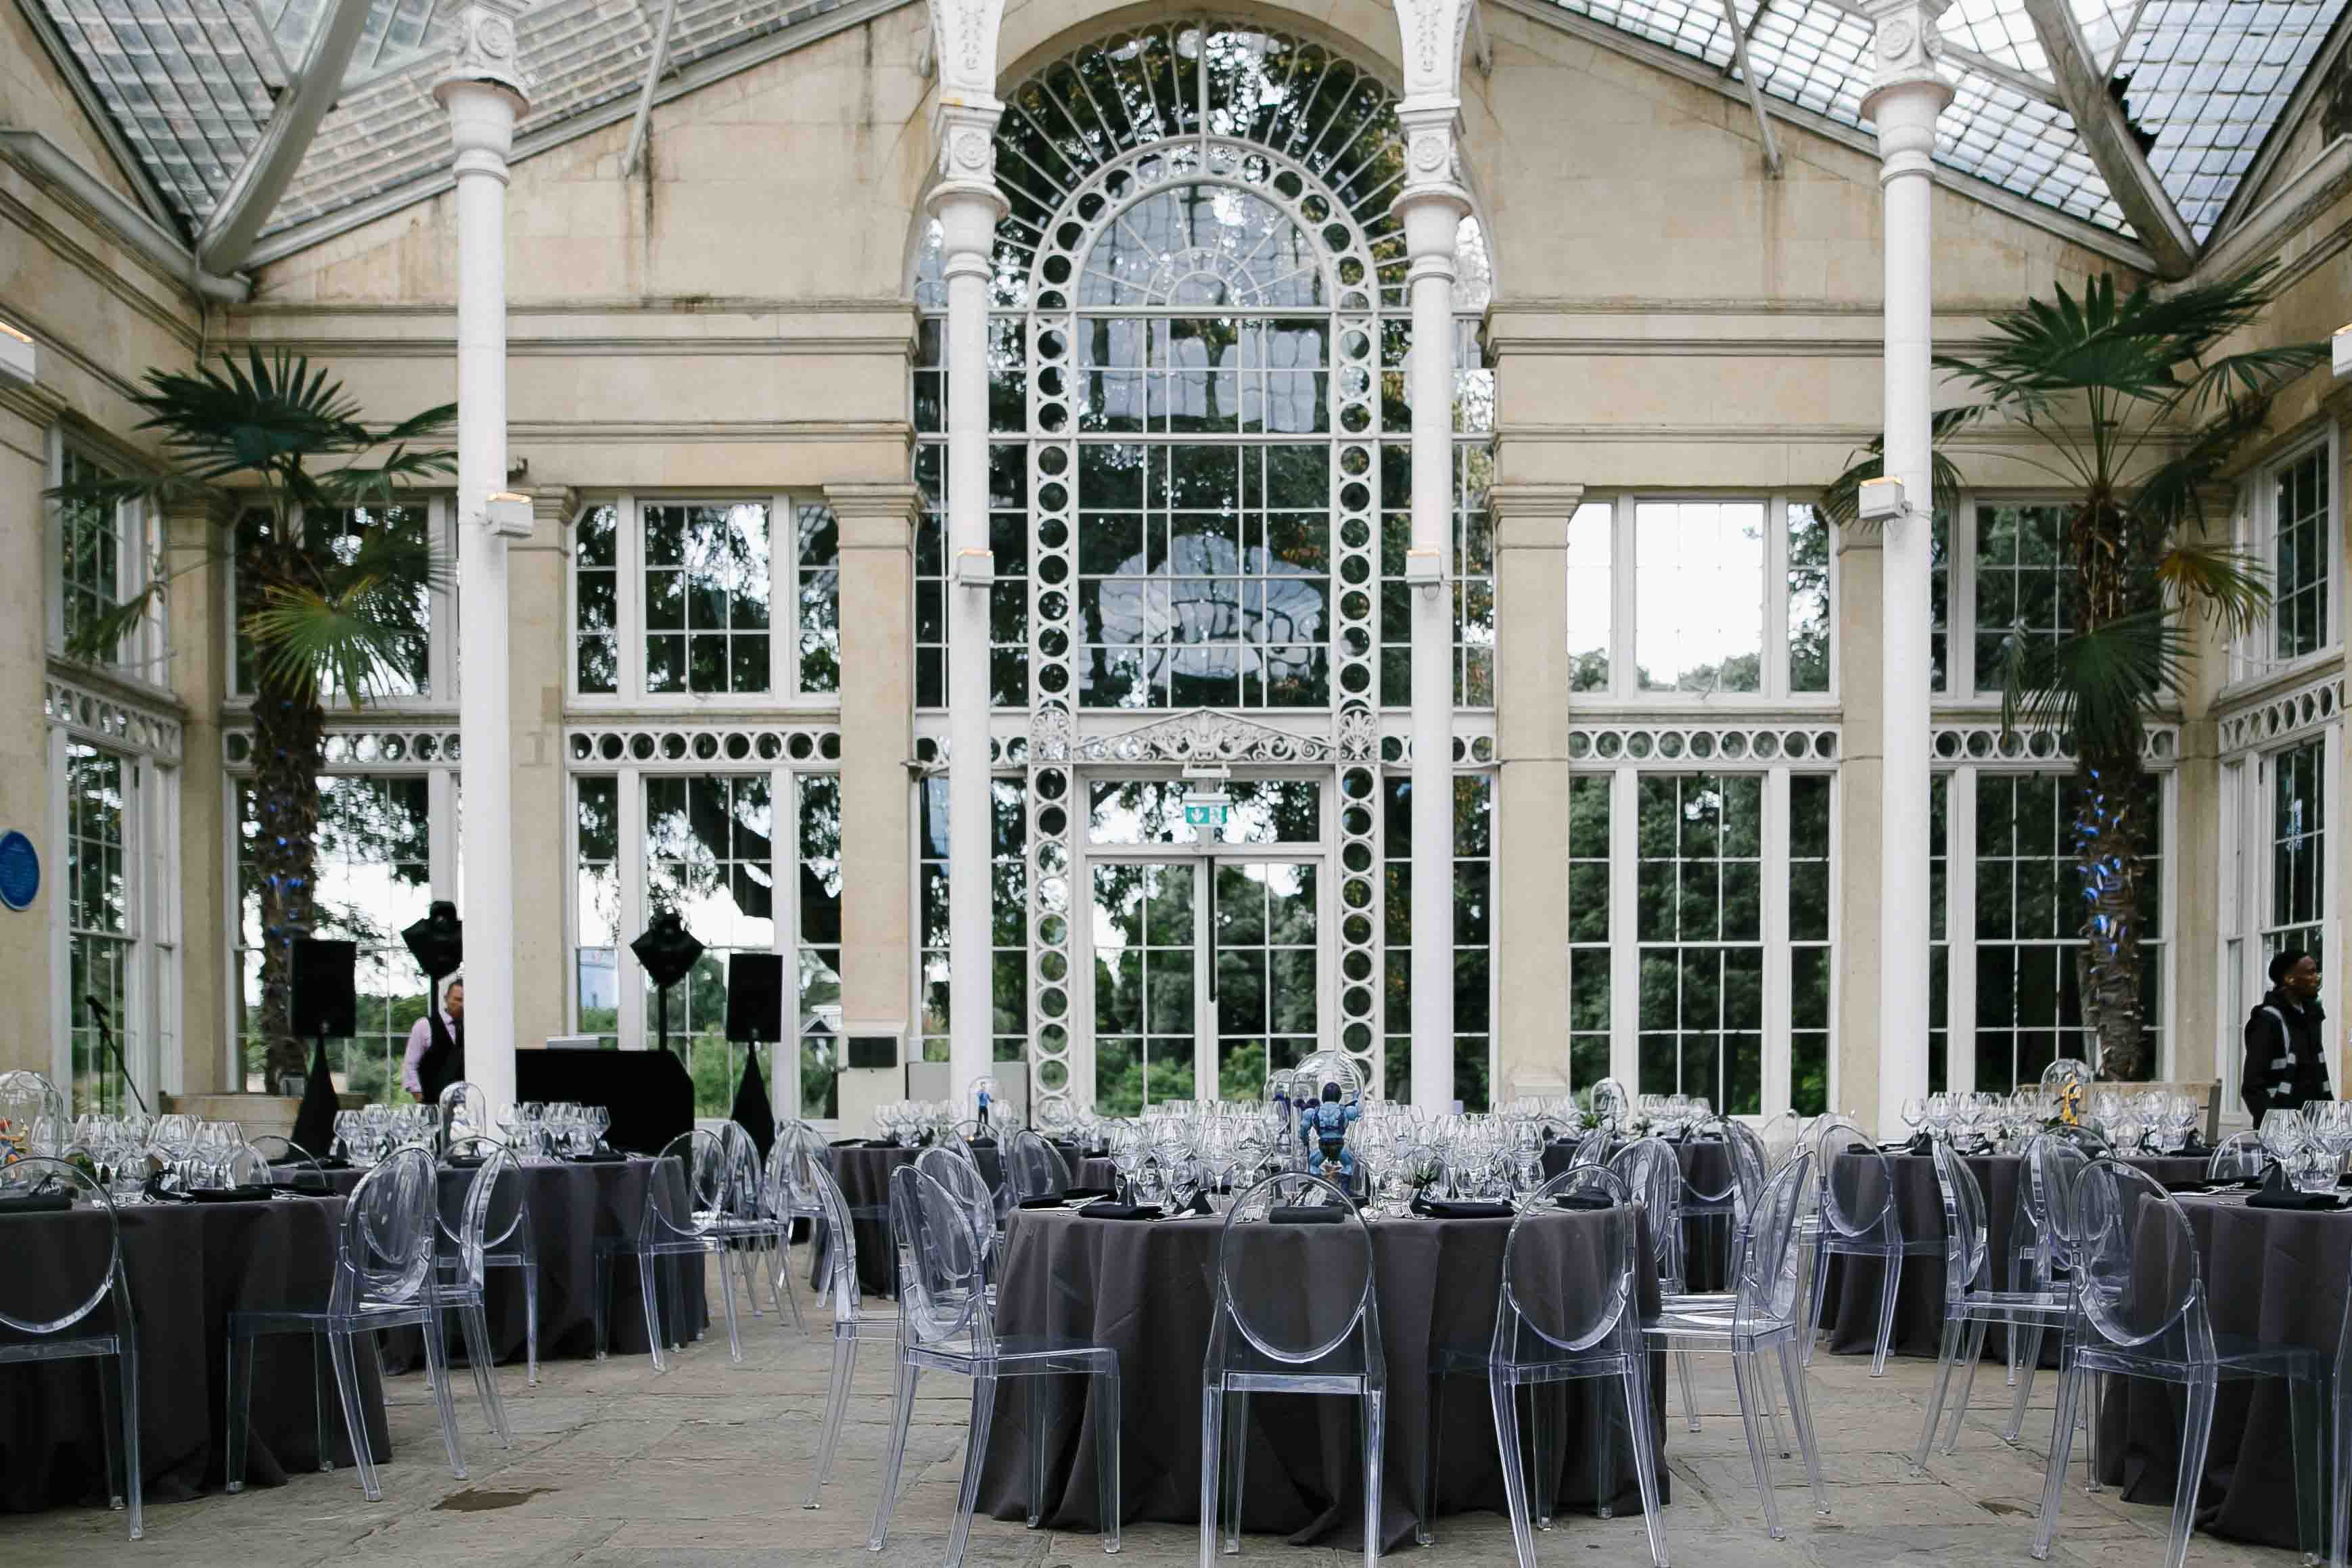 80s wedding theme at syon park conservatory